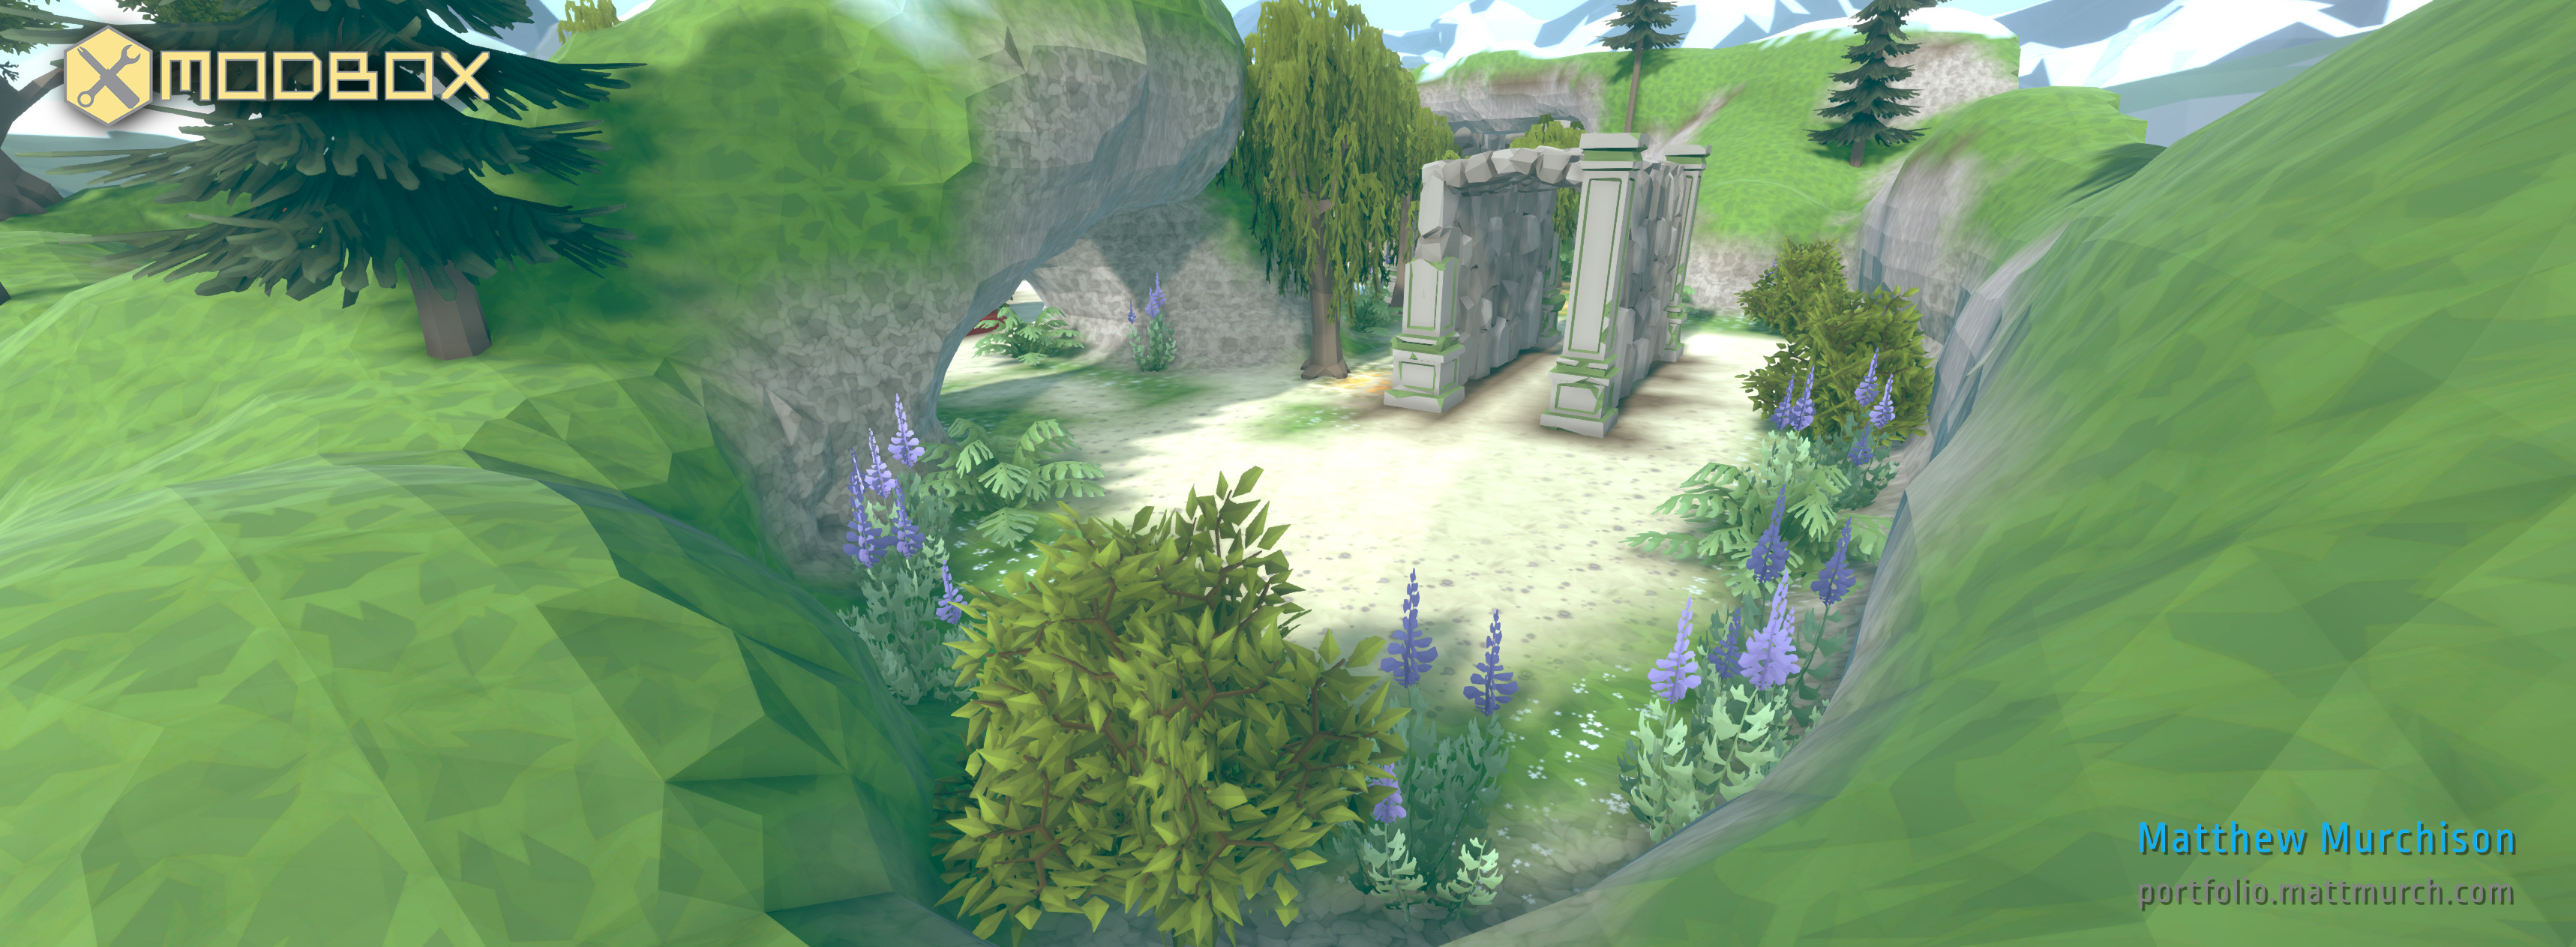 The mix of foliage and ancient ruins creates a beautiful combat environment.